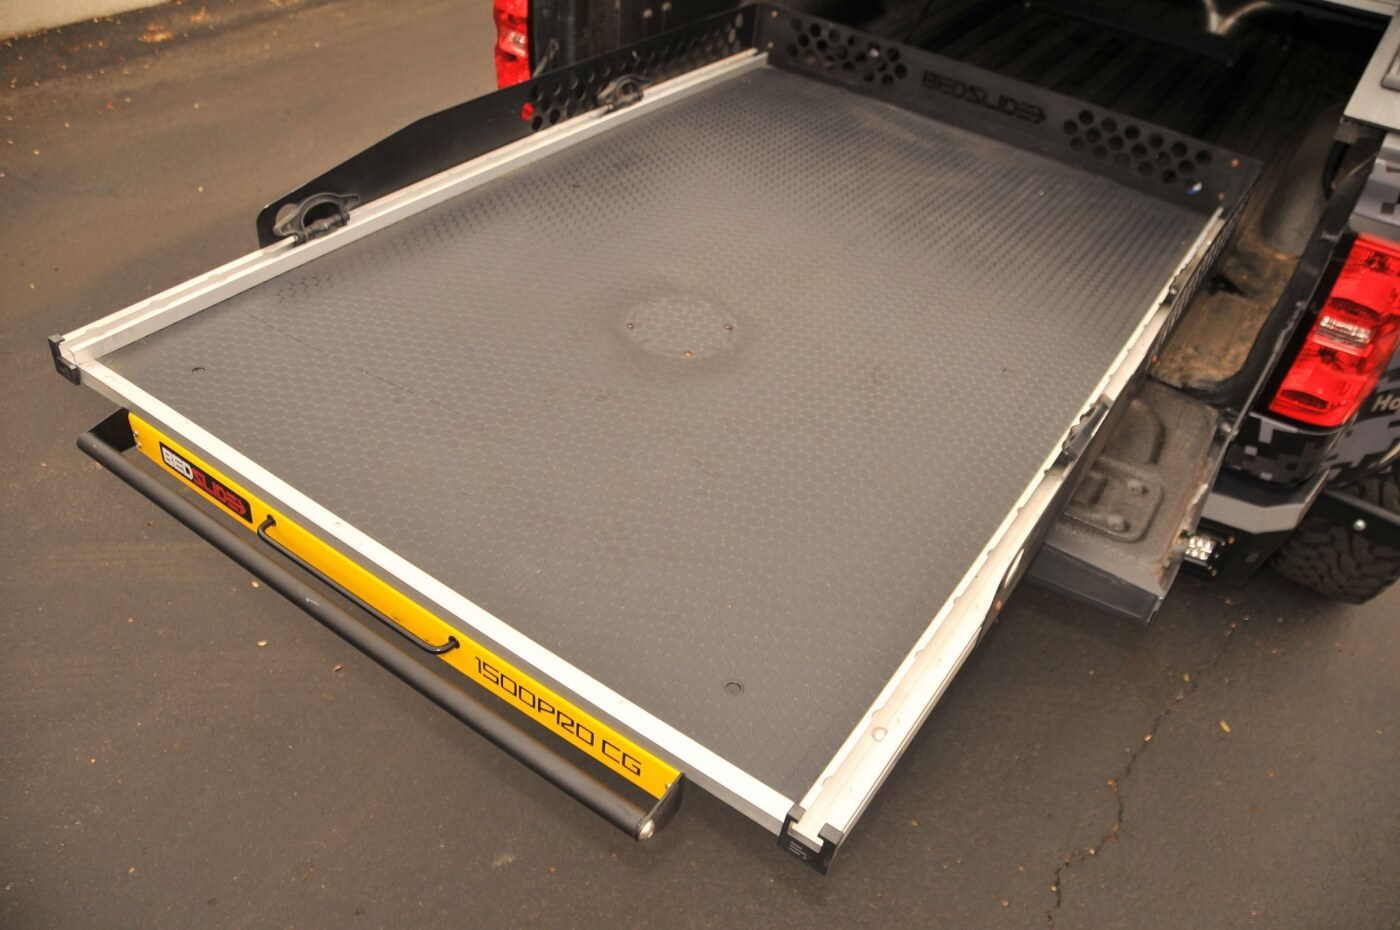 The BedSlide 1500 Pro CG allows Fromm to load and unload the bed with minimal effort.